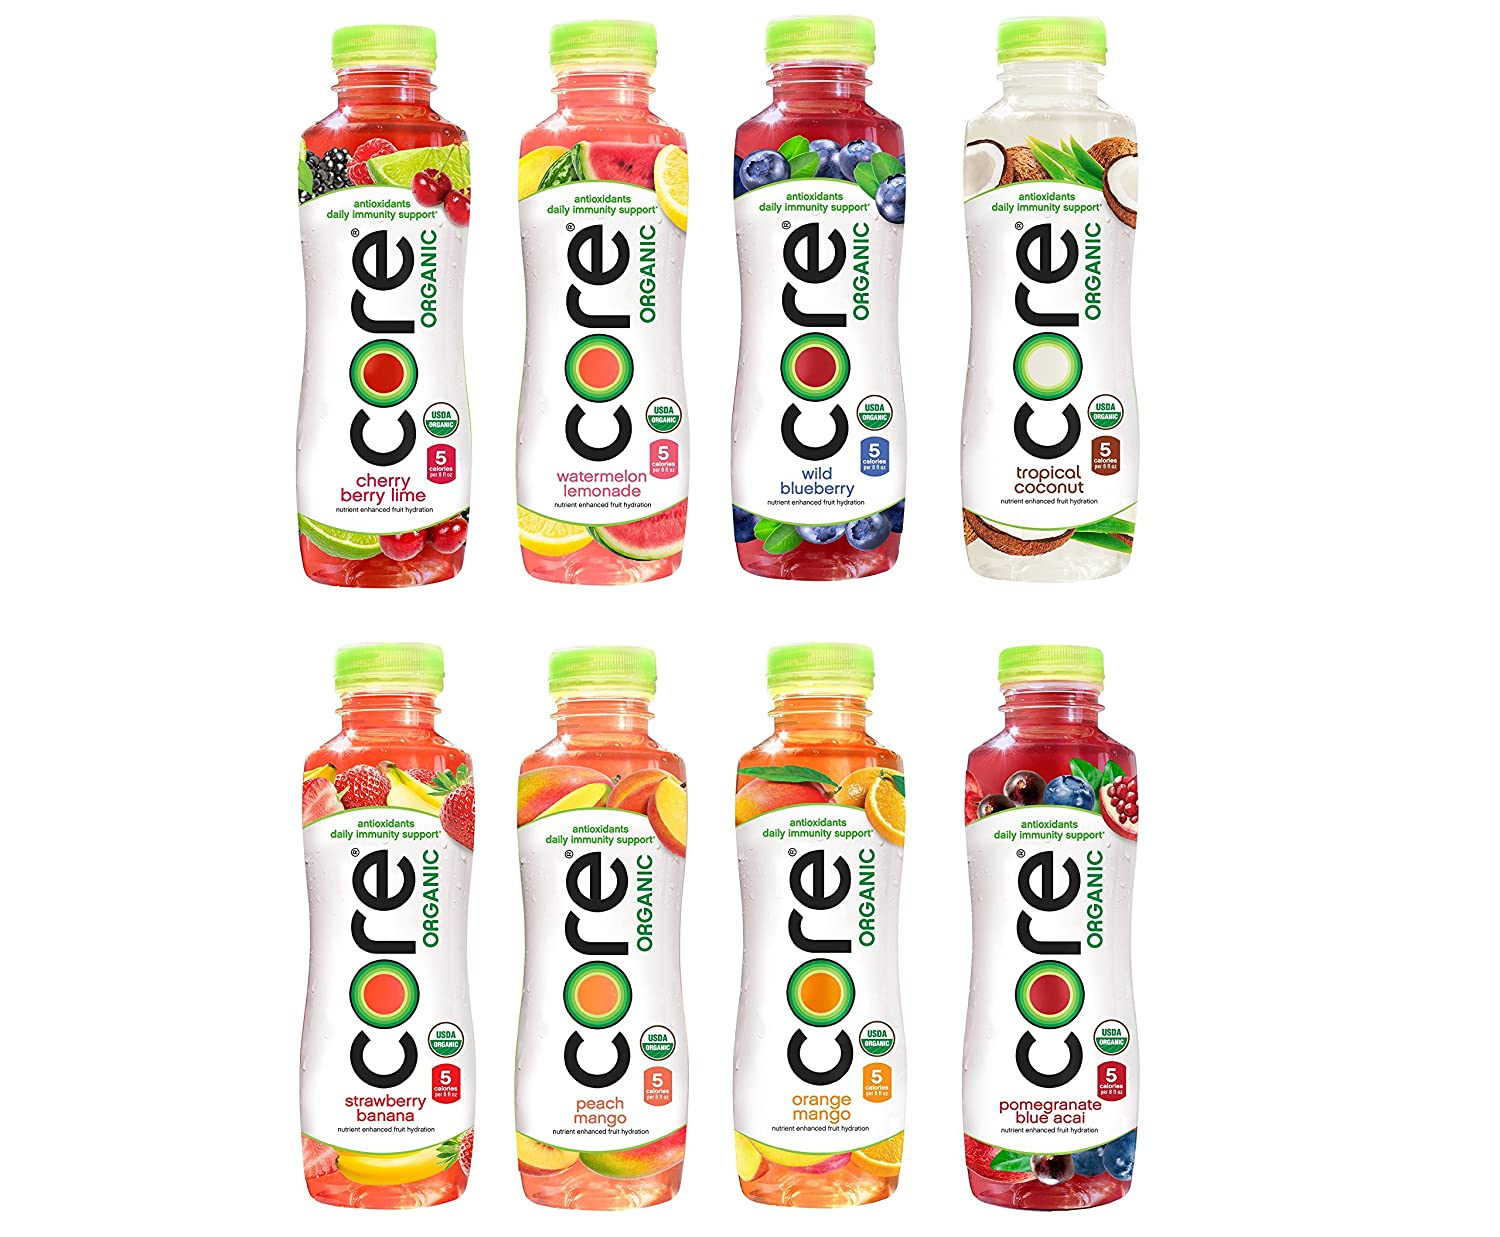 CORE Organic Fruit Infused Beverage 8 Flavor Variety Pack, 18 Fl Oz (Pack of 32)